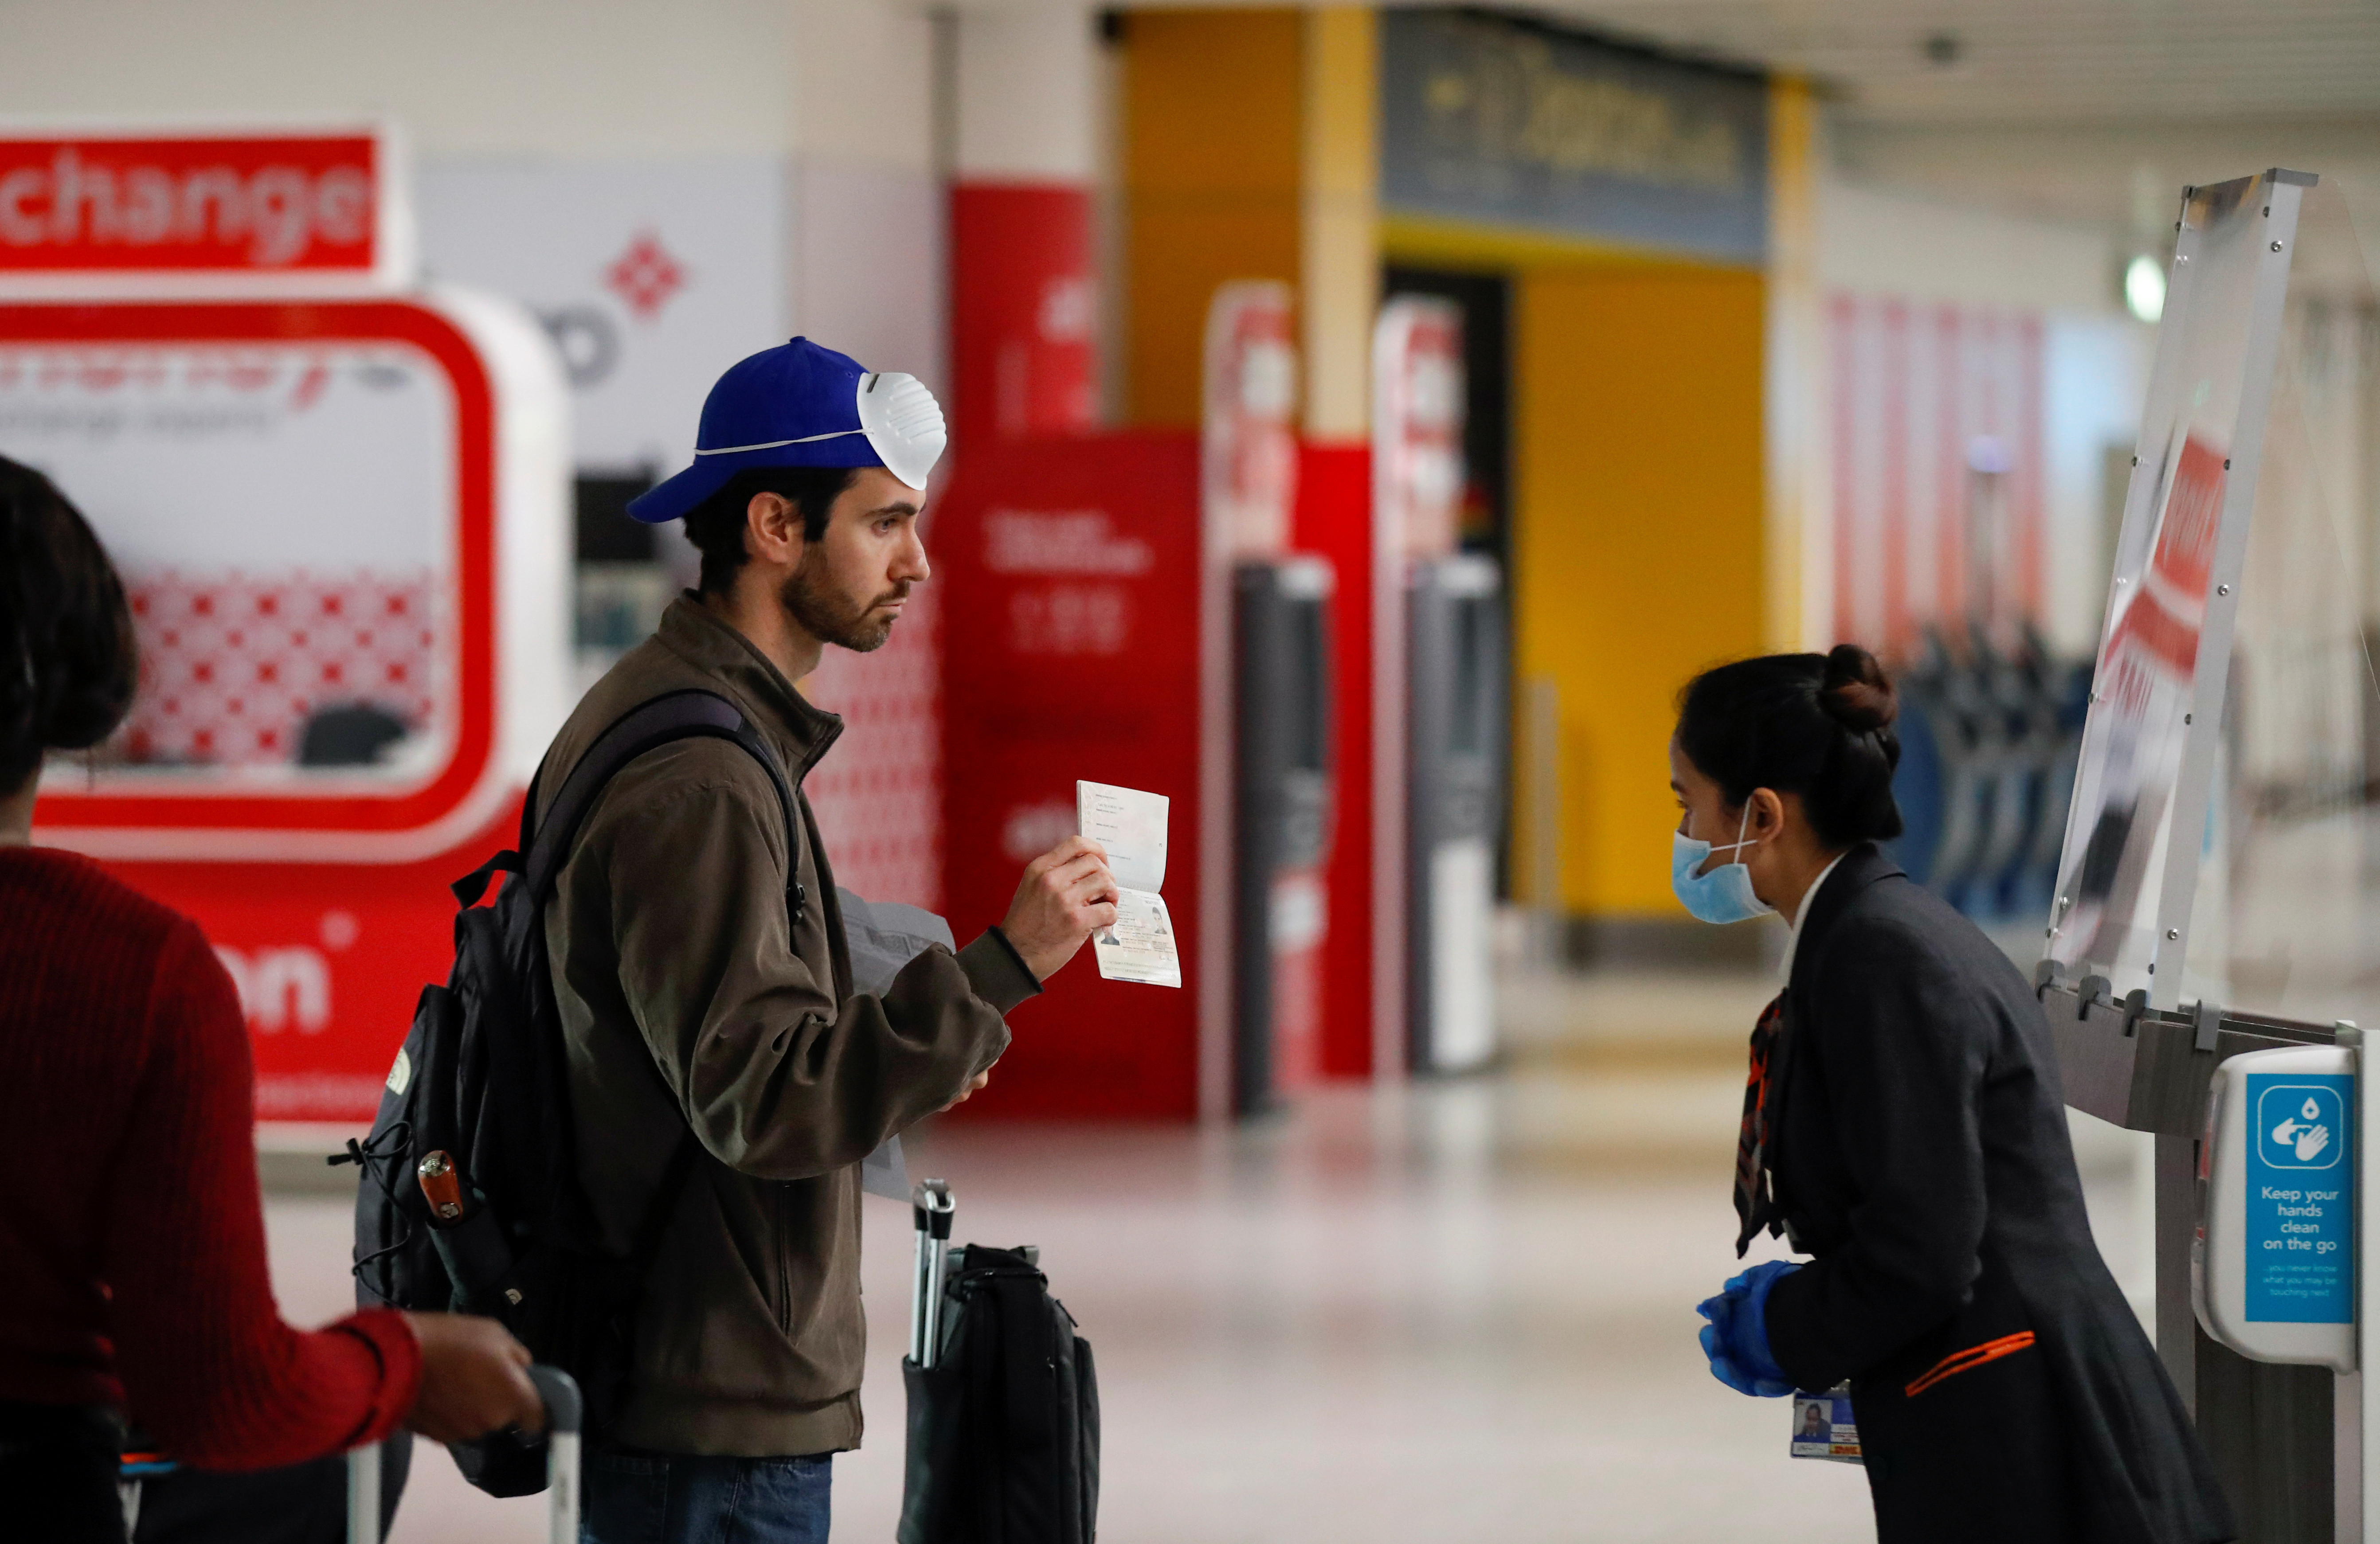 A passenger shows his passport to a staff member at Gatwick Airport, amid the coronavirus disease (COVID-19) outbreak, in Gatwick, Britain June 15, 2020.